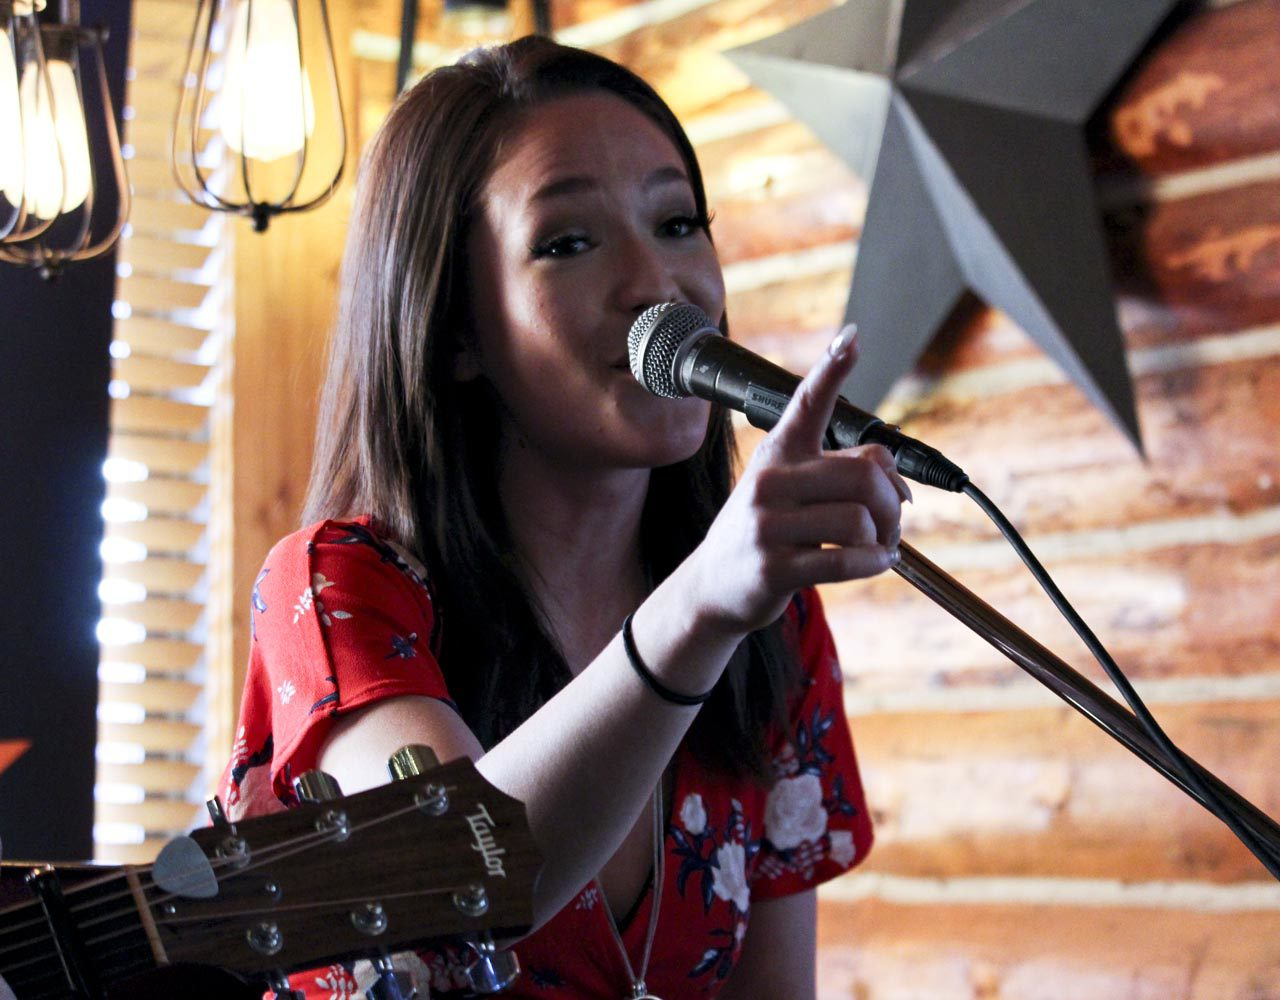 Ottawa singer to headline Canada-wide country music contest – The